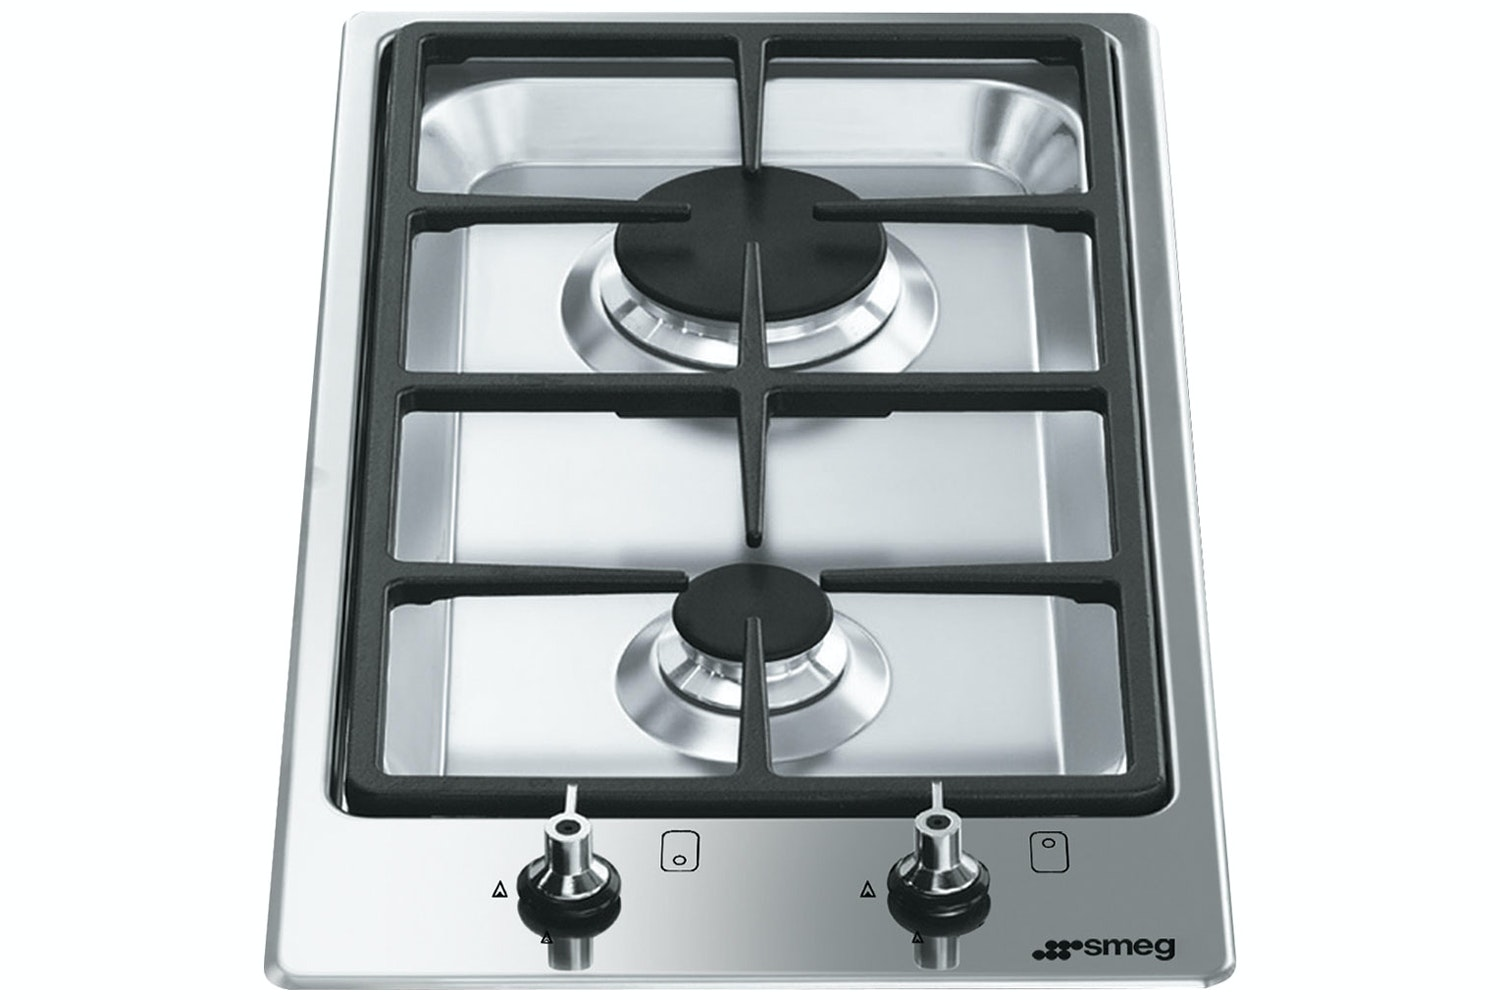 Smeg 31cm Classic Gas Hob | Stainless Steel